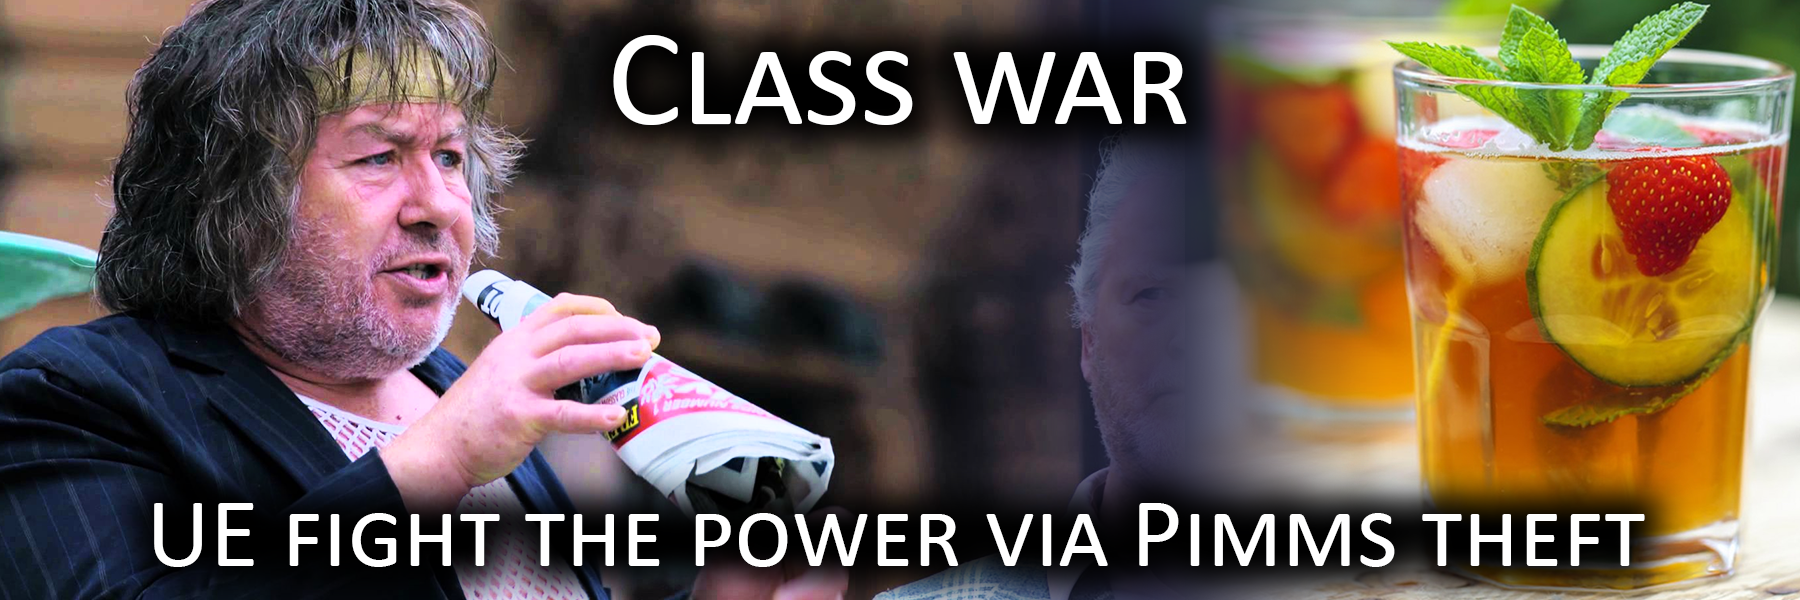 Class war - UE fight the power via pimms theft